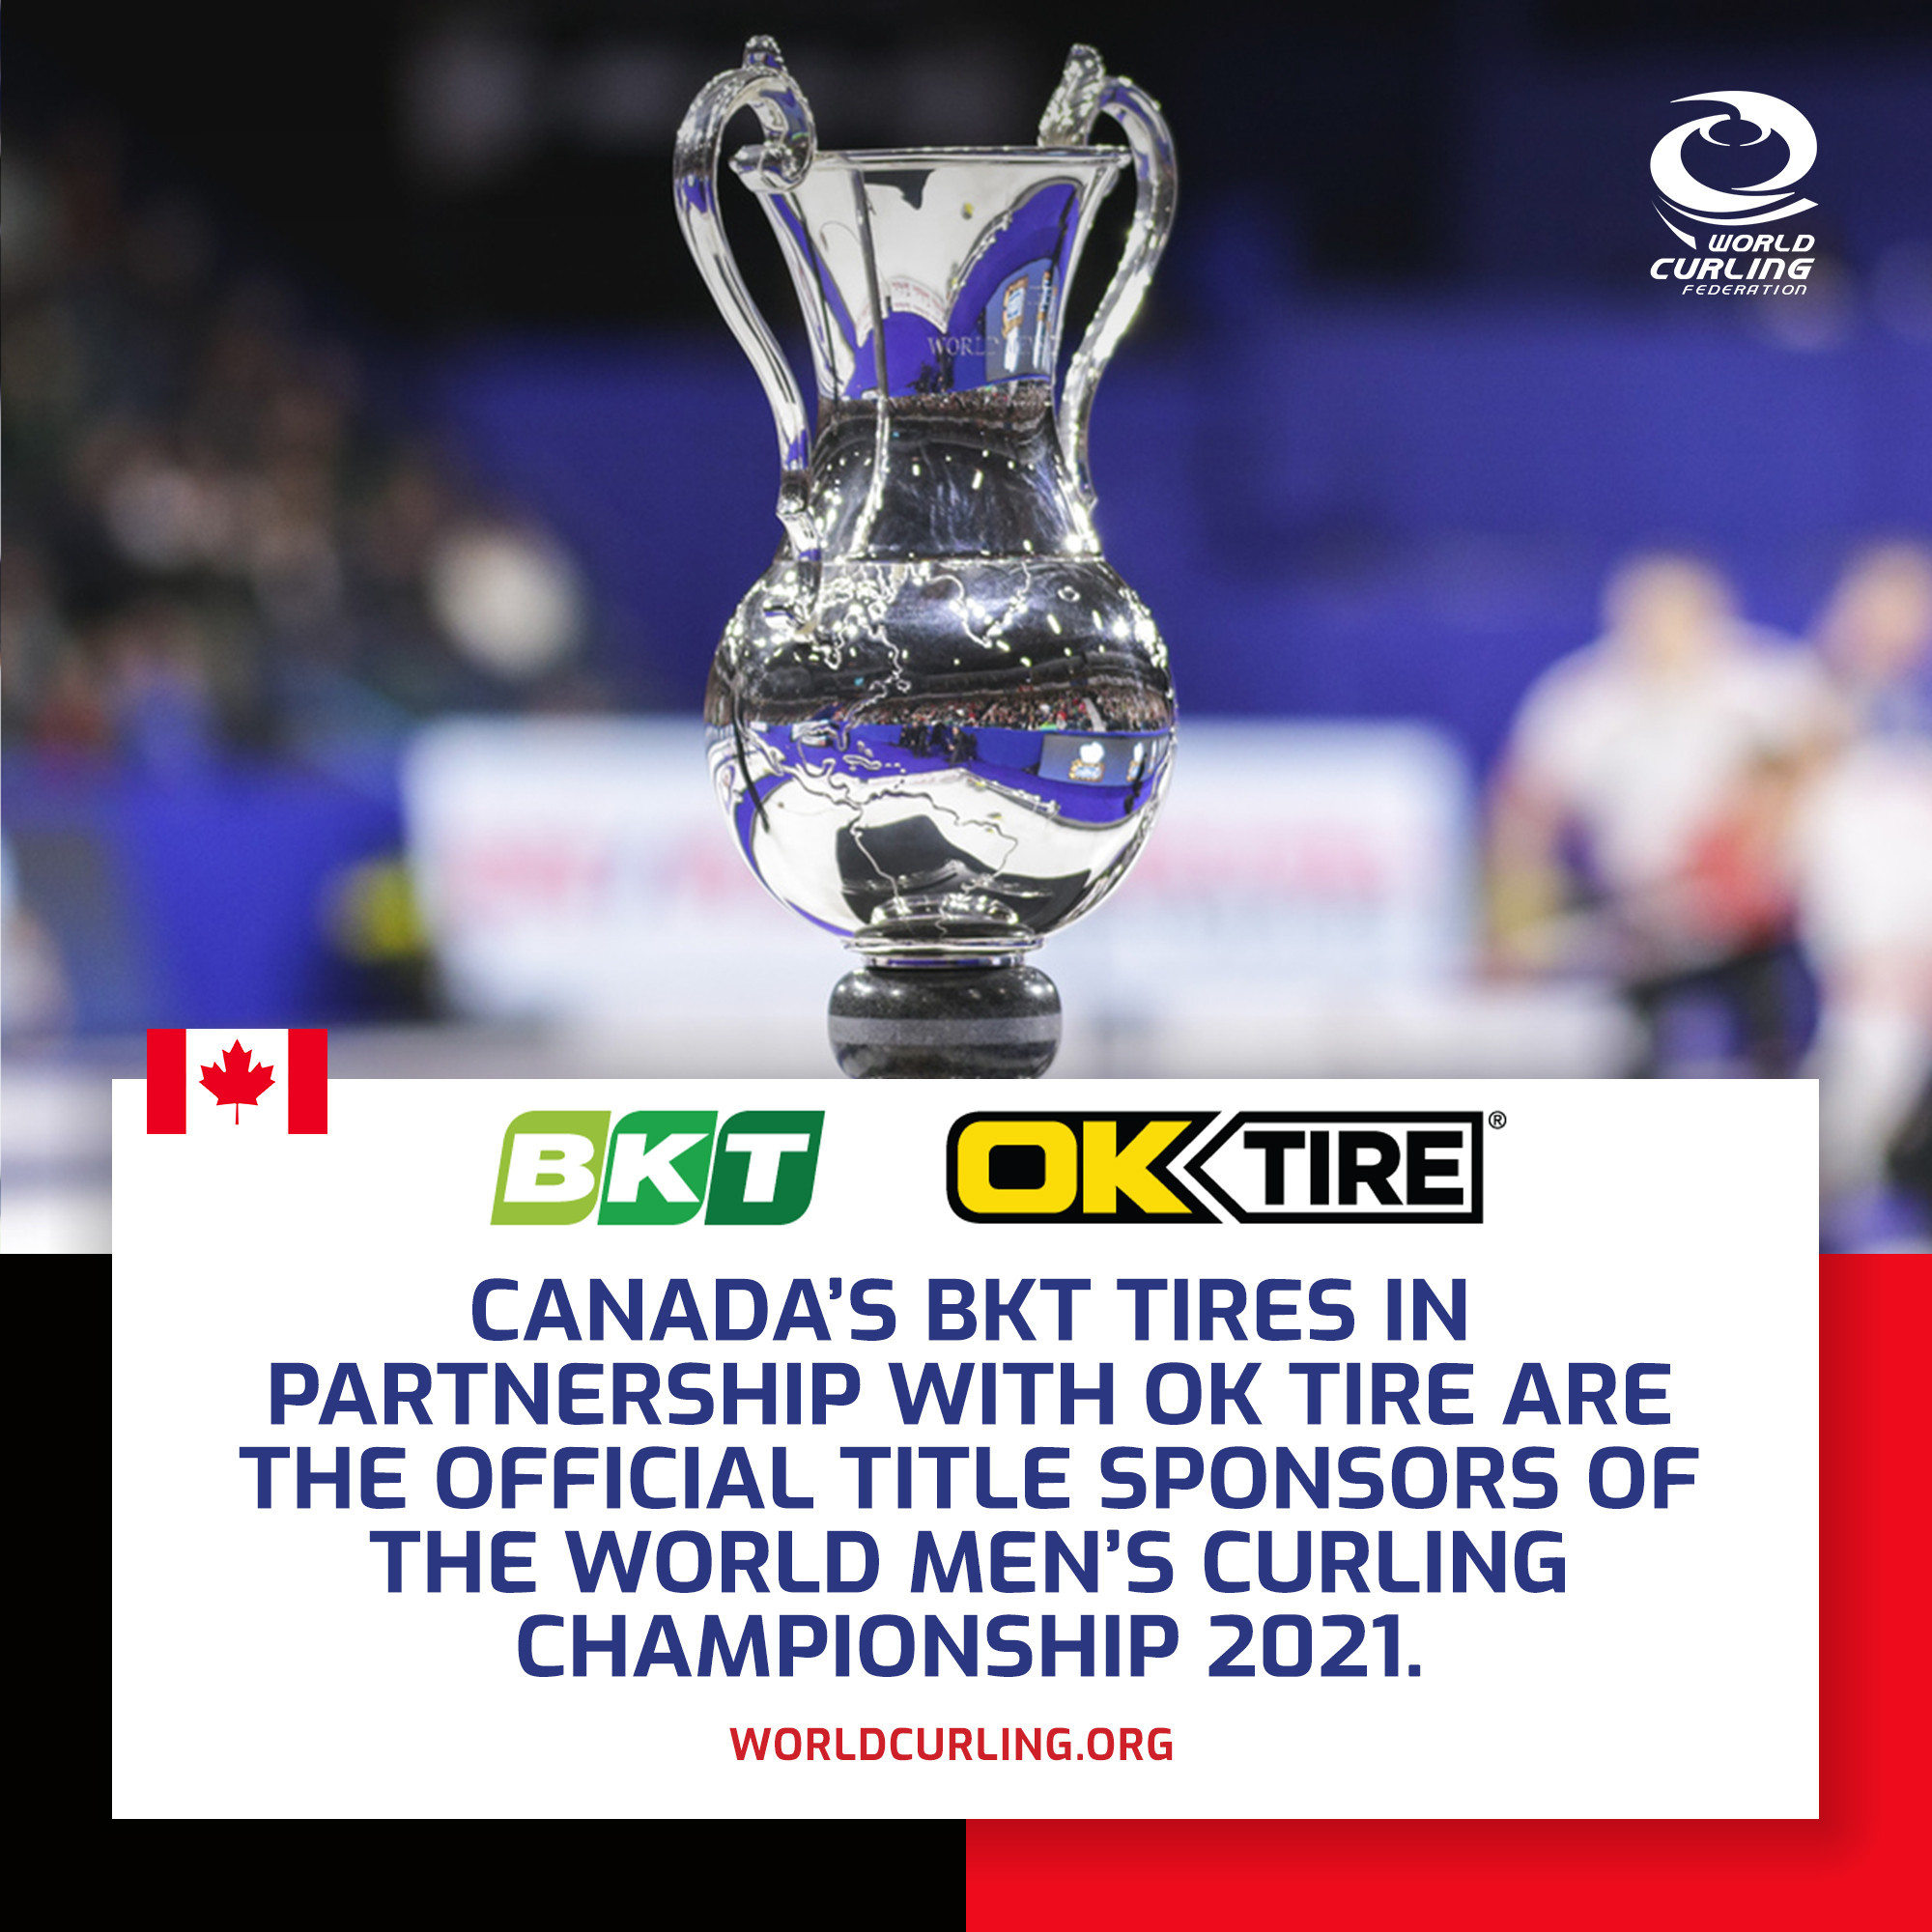 BKT Tires and OK Tire named as title sponsors for 2021 World Men's Curling Championship